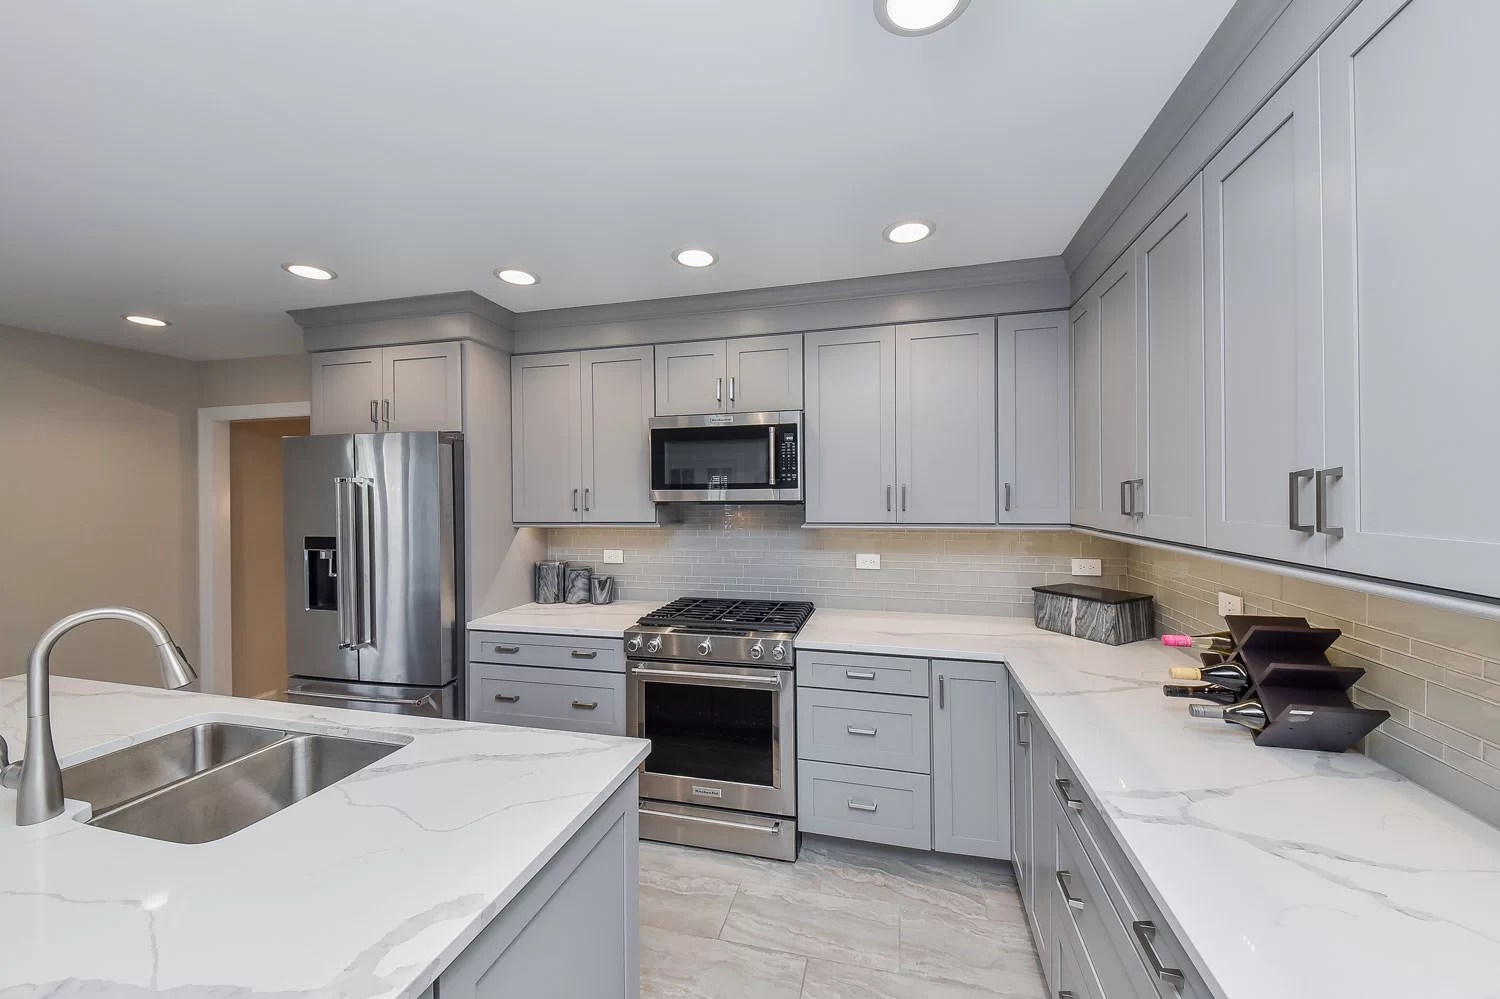 A Downers Grove Kitchen Remodel Project Pictures  Home Remodeling Contractors  Sebring Design